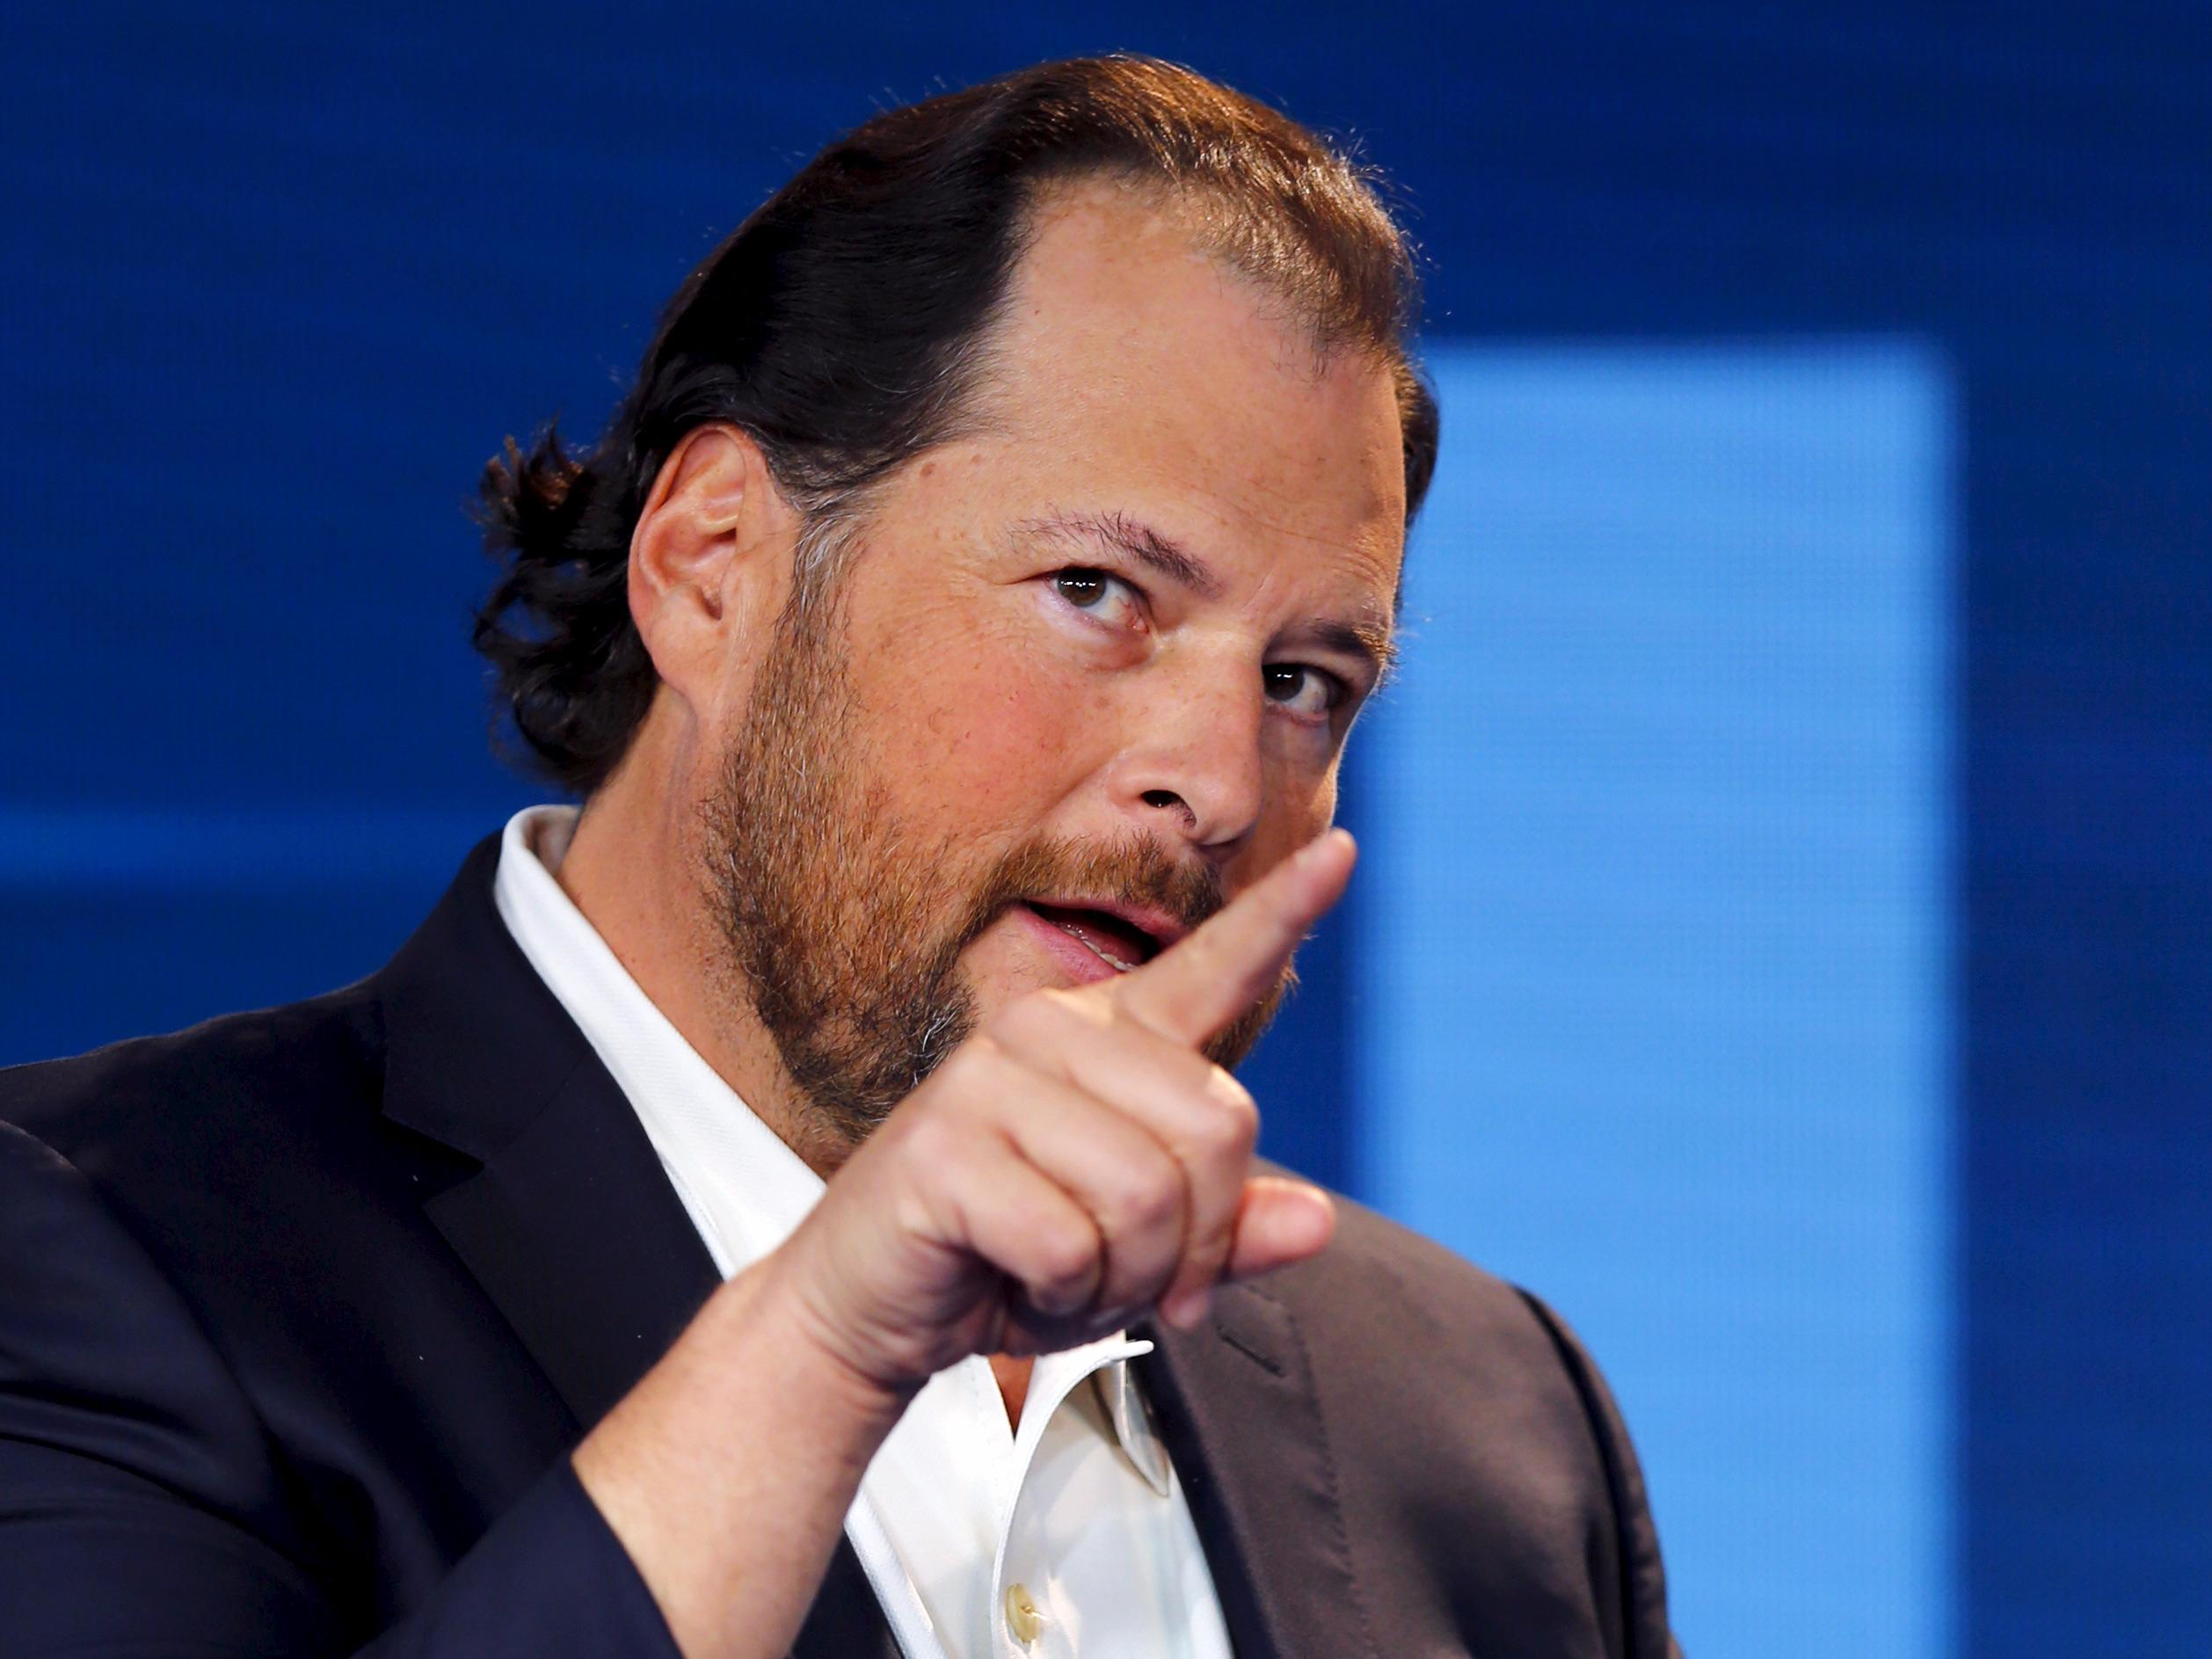 Marc Benioff waylaid Tim Cook at a party to get him to condemn antigay legislation